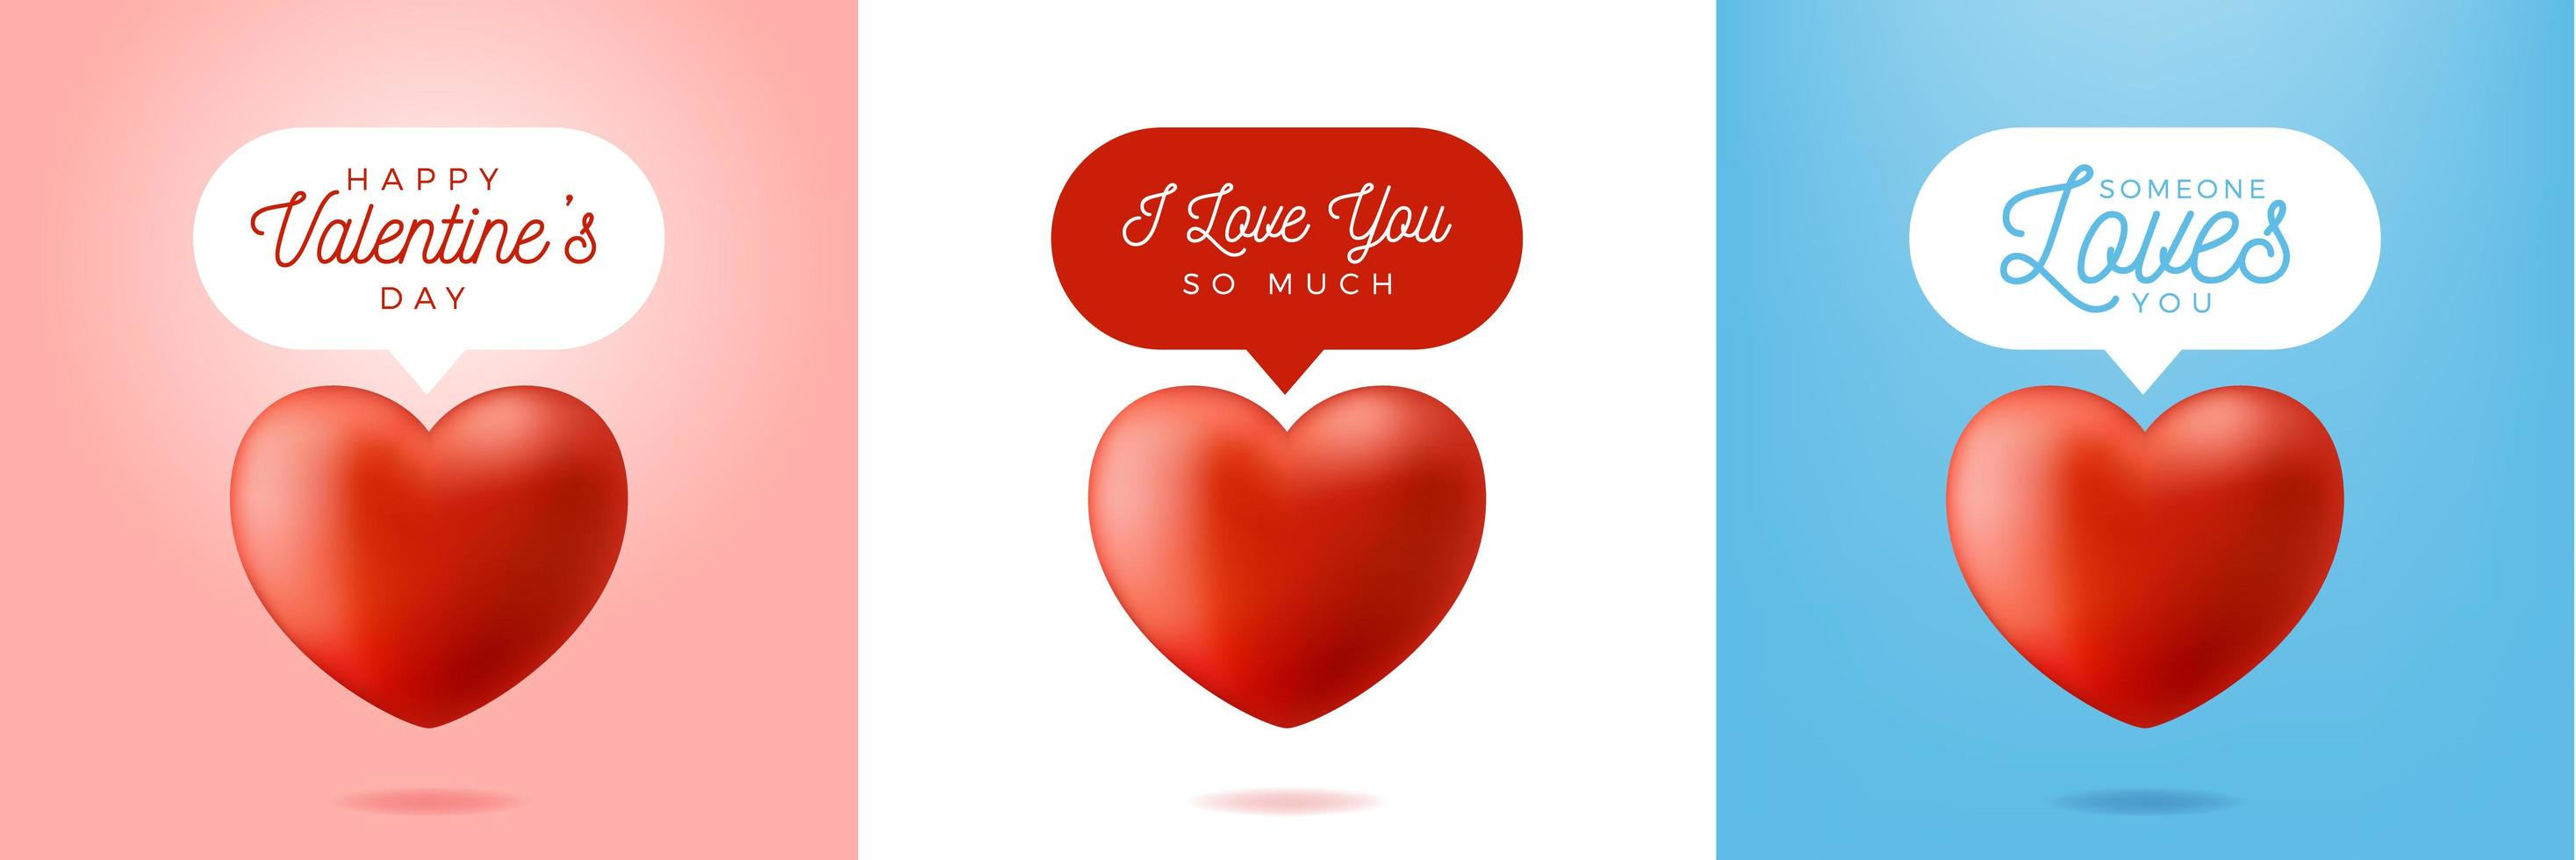 Valentine realistic red heart message set vector